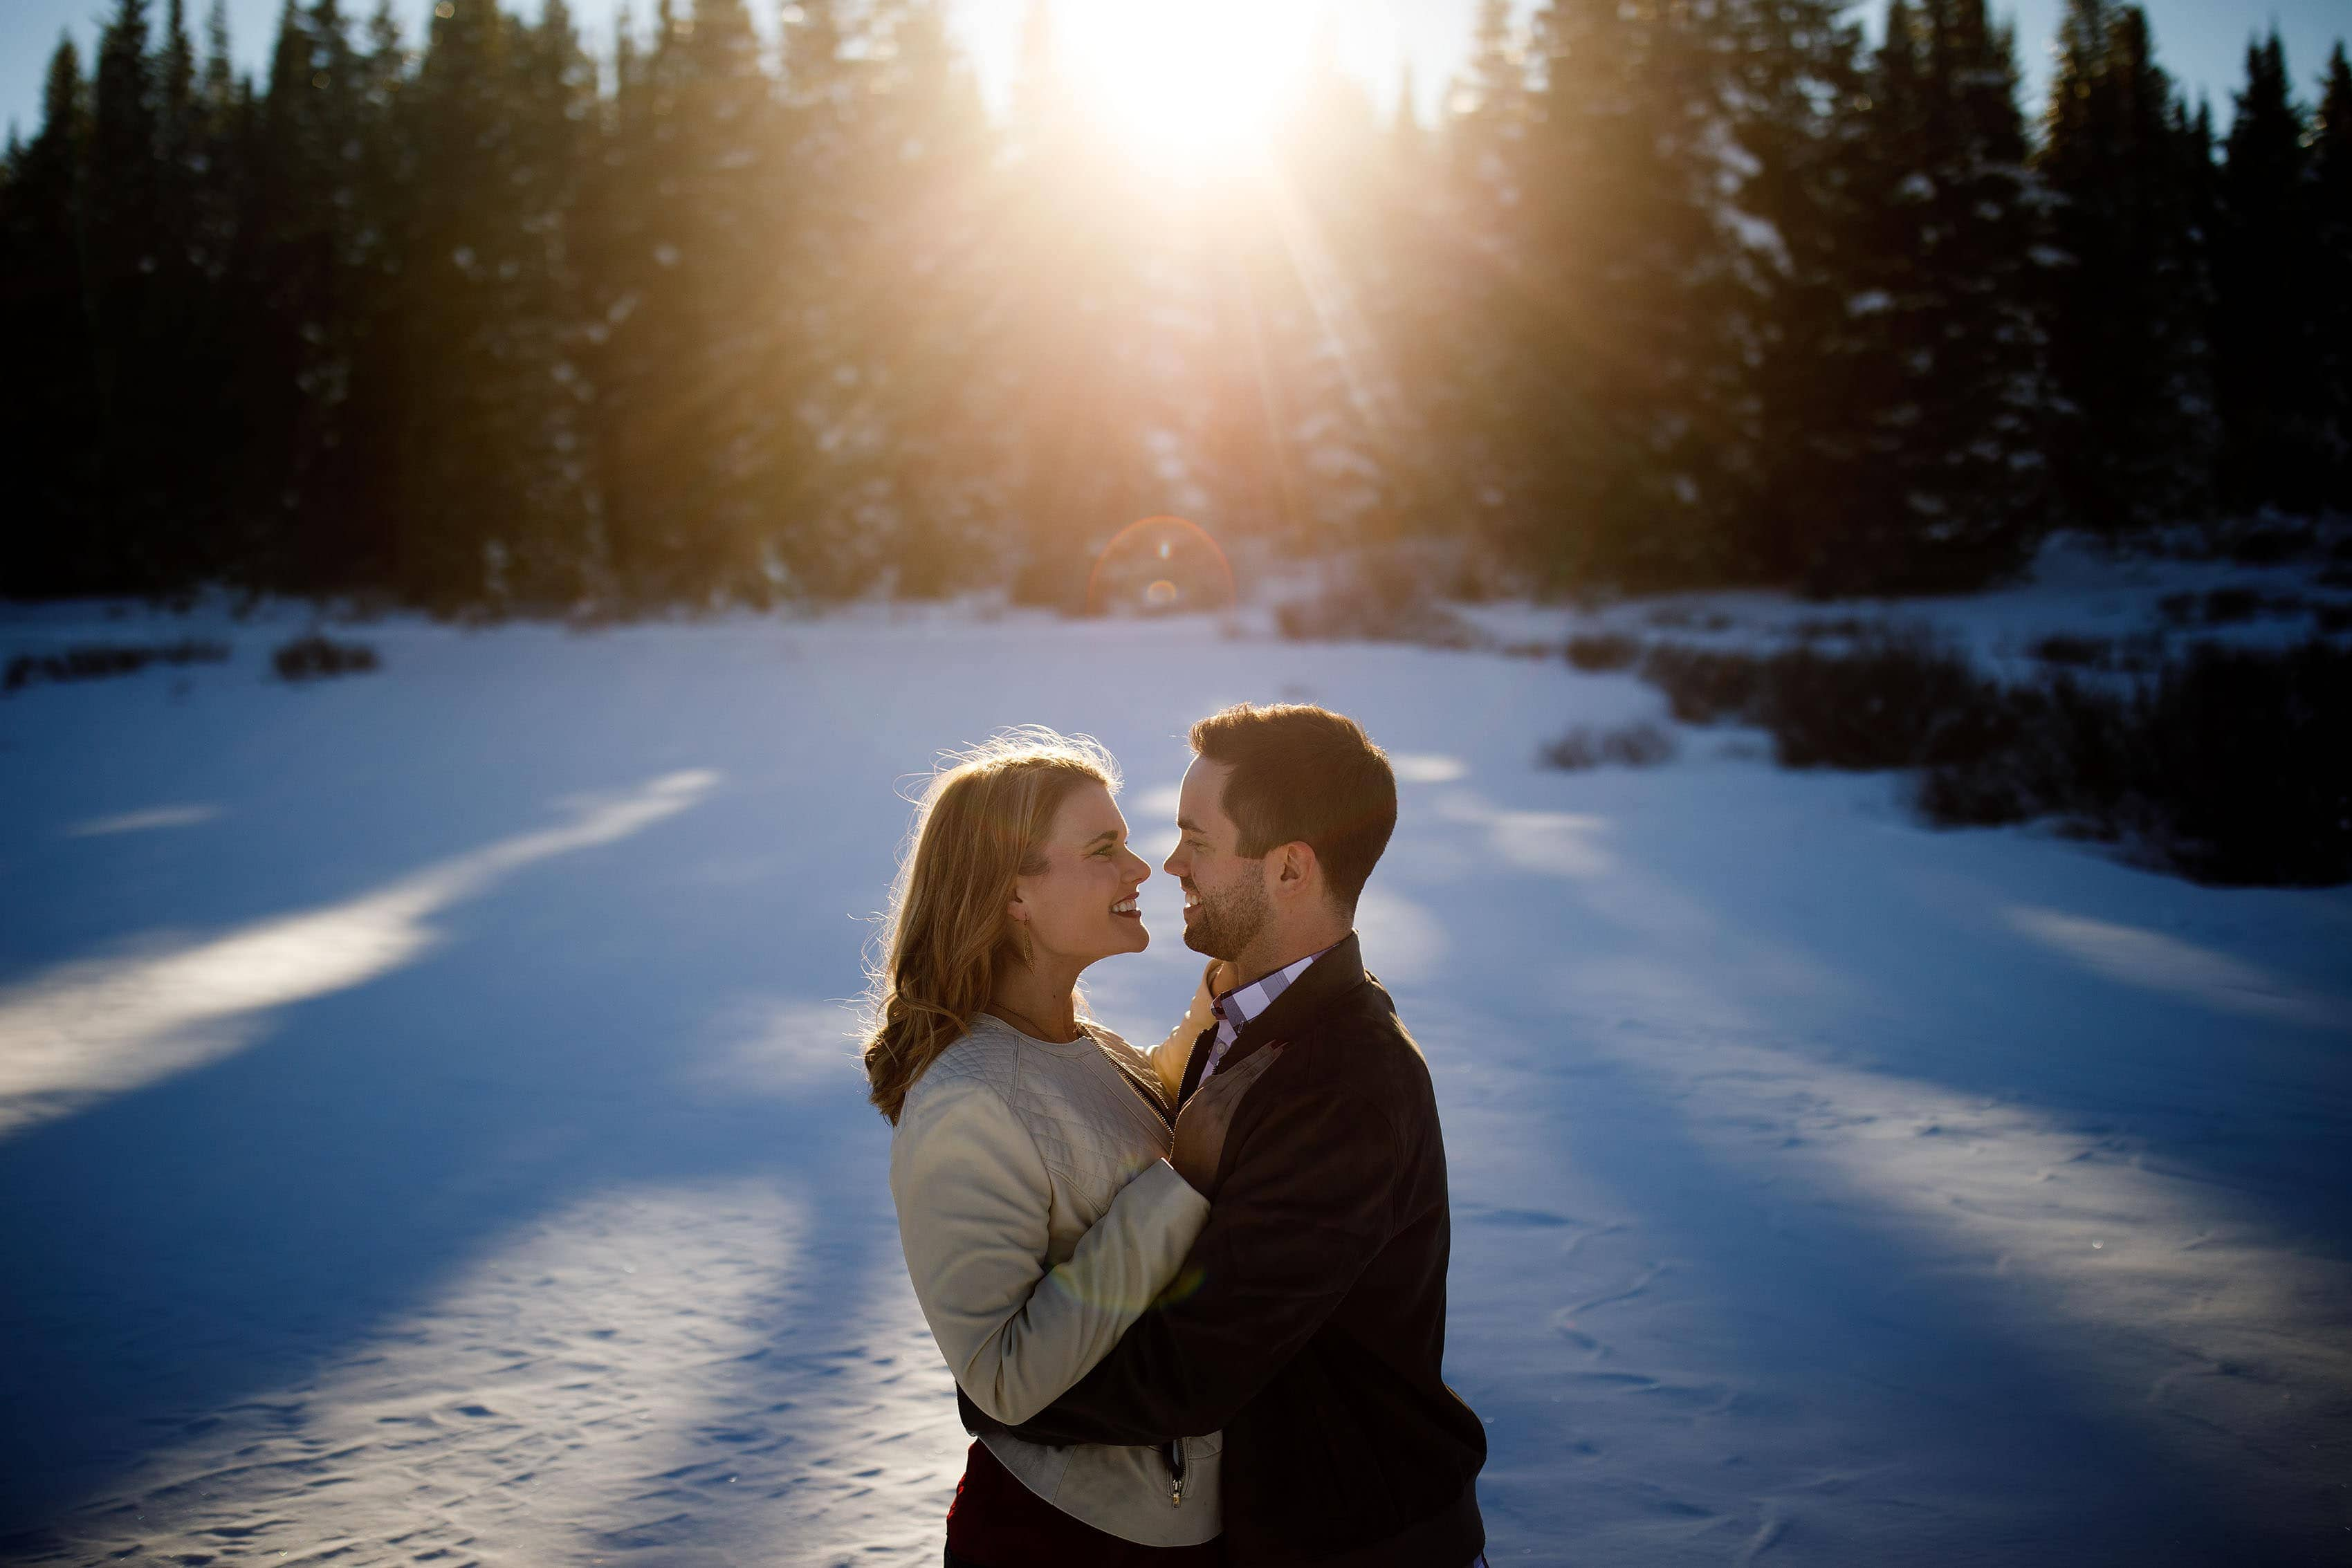 Micha and Julia pose together in the snow as the sun sets behind them on Shrine Pass near Vail